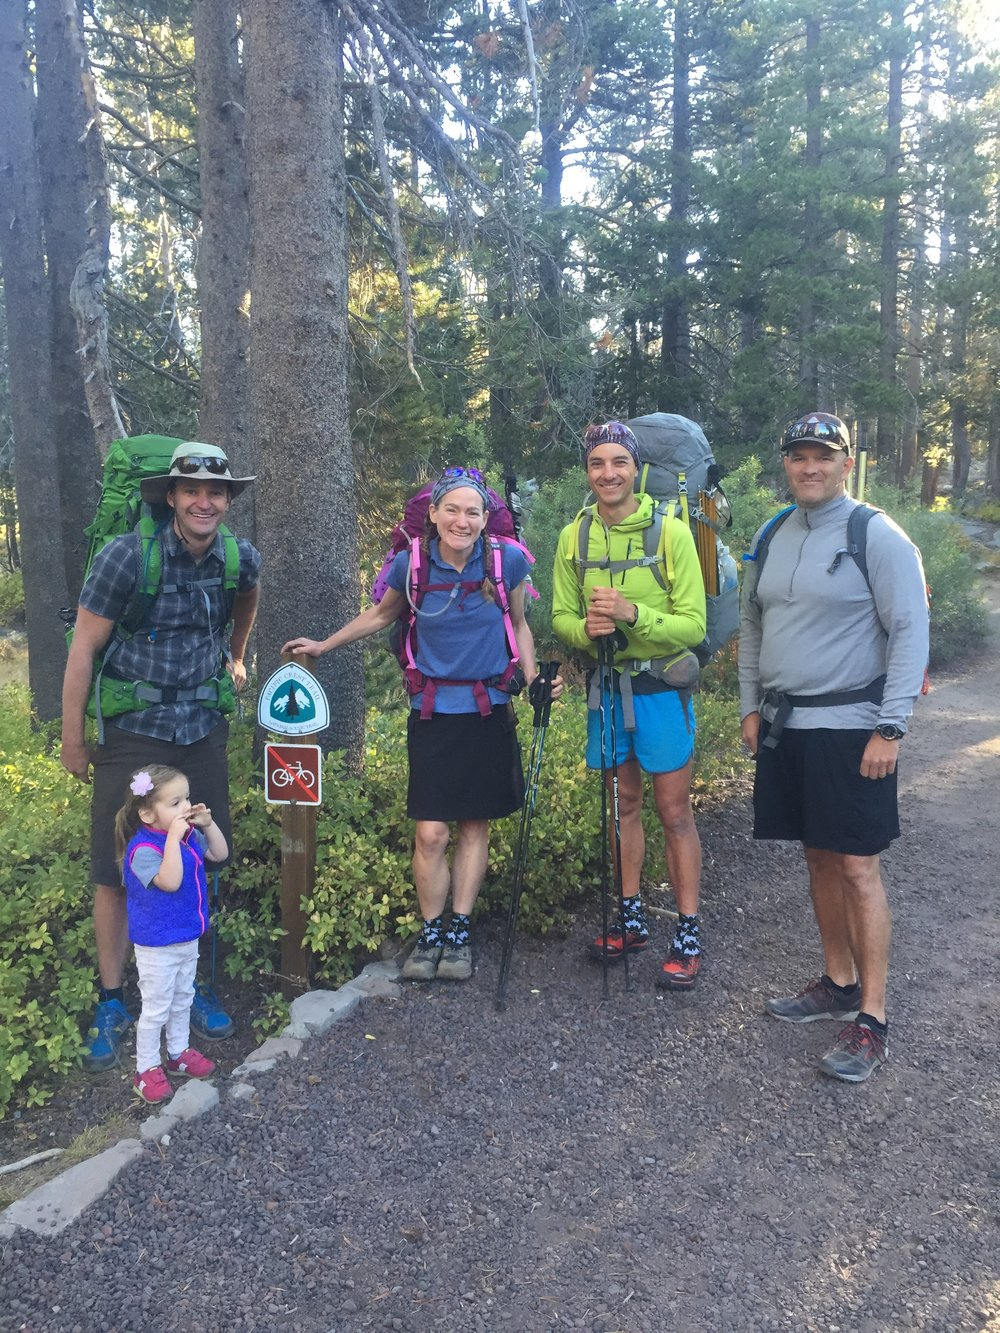 Ready to hike! Bryan, Huckleberry, Macro, Matt, with Annika for good measure (PC - Becky)